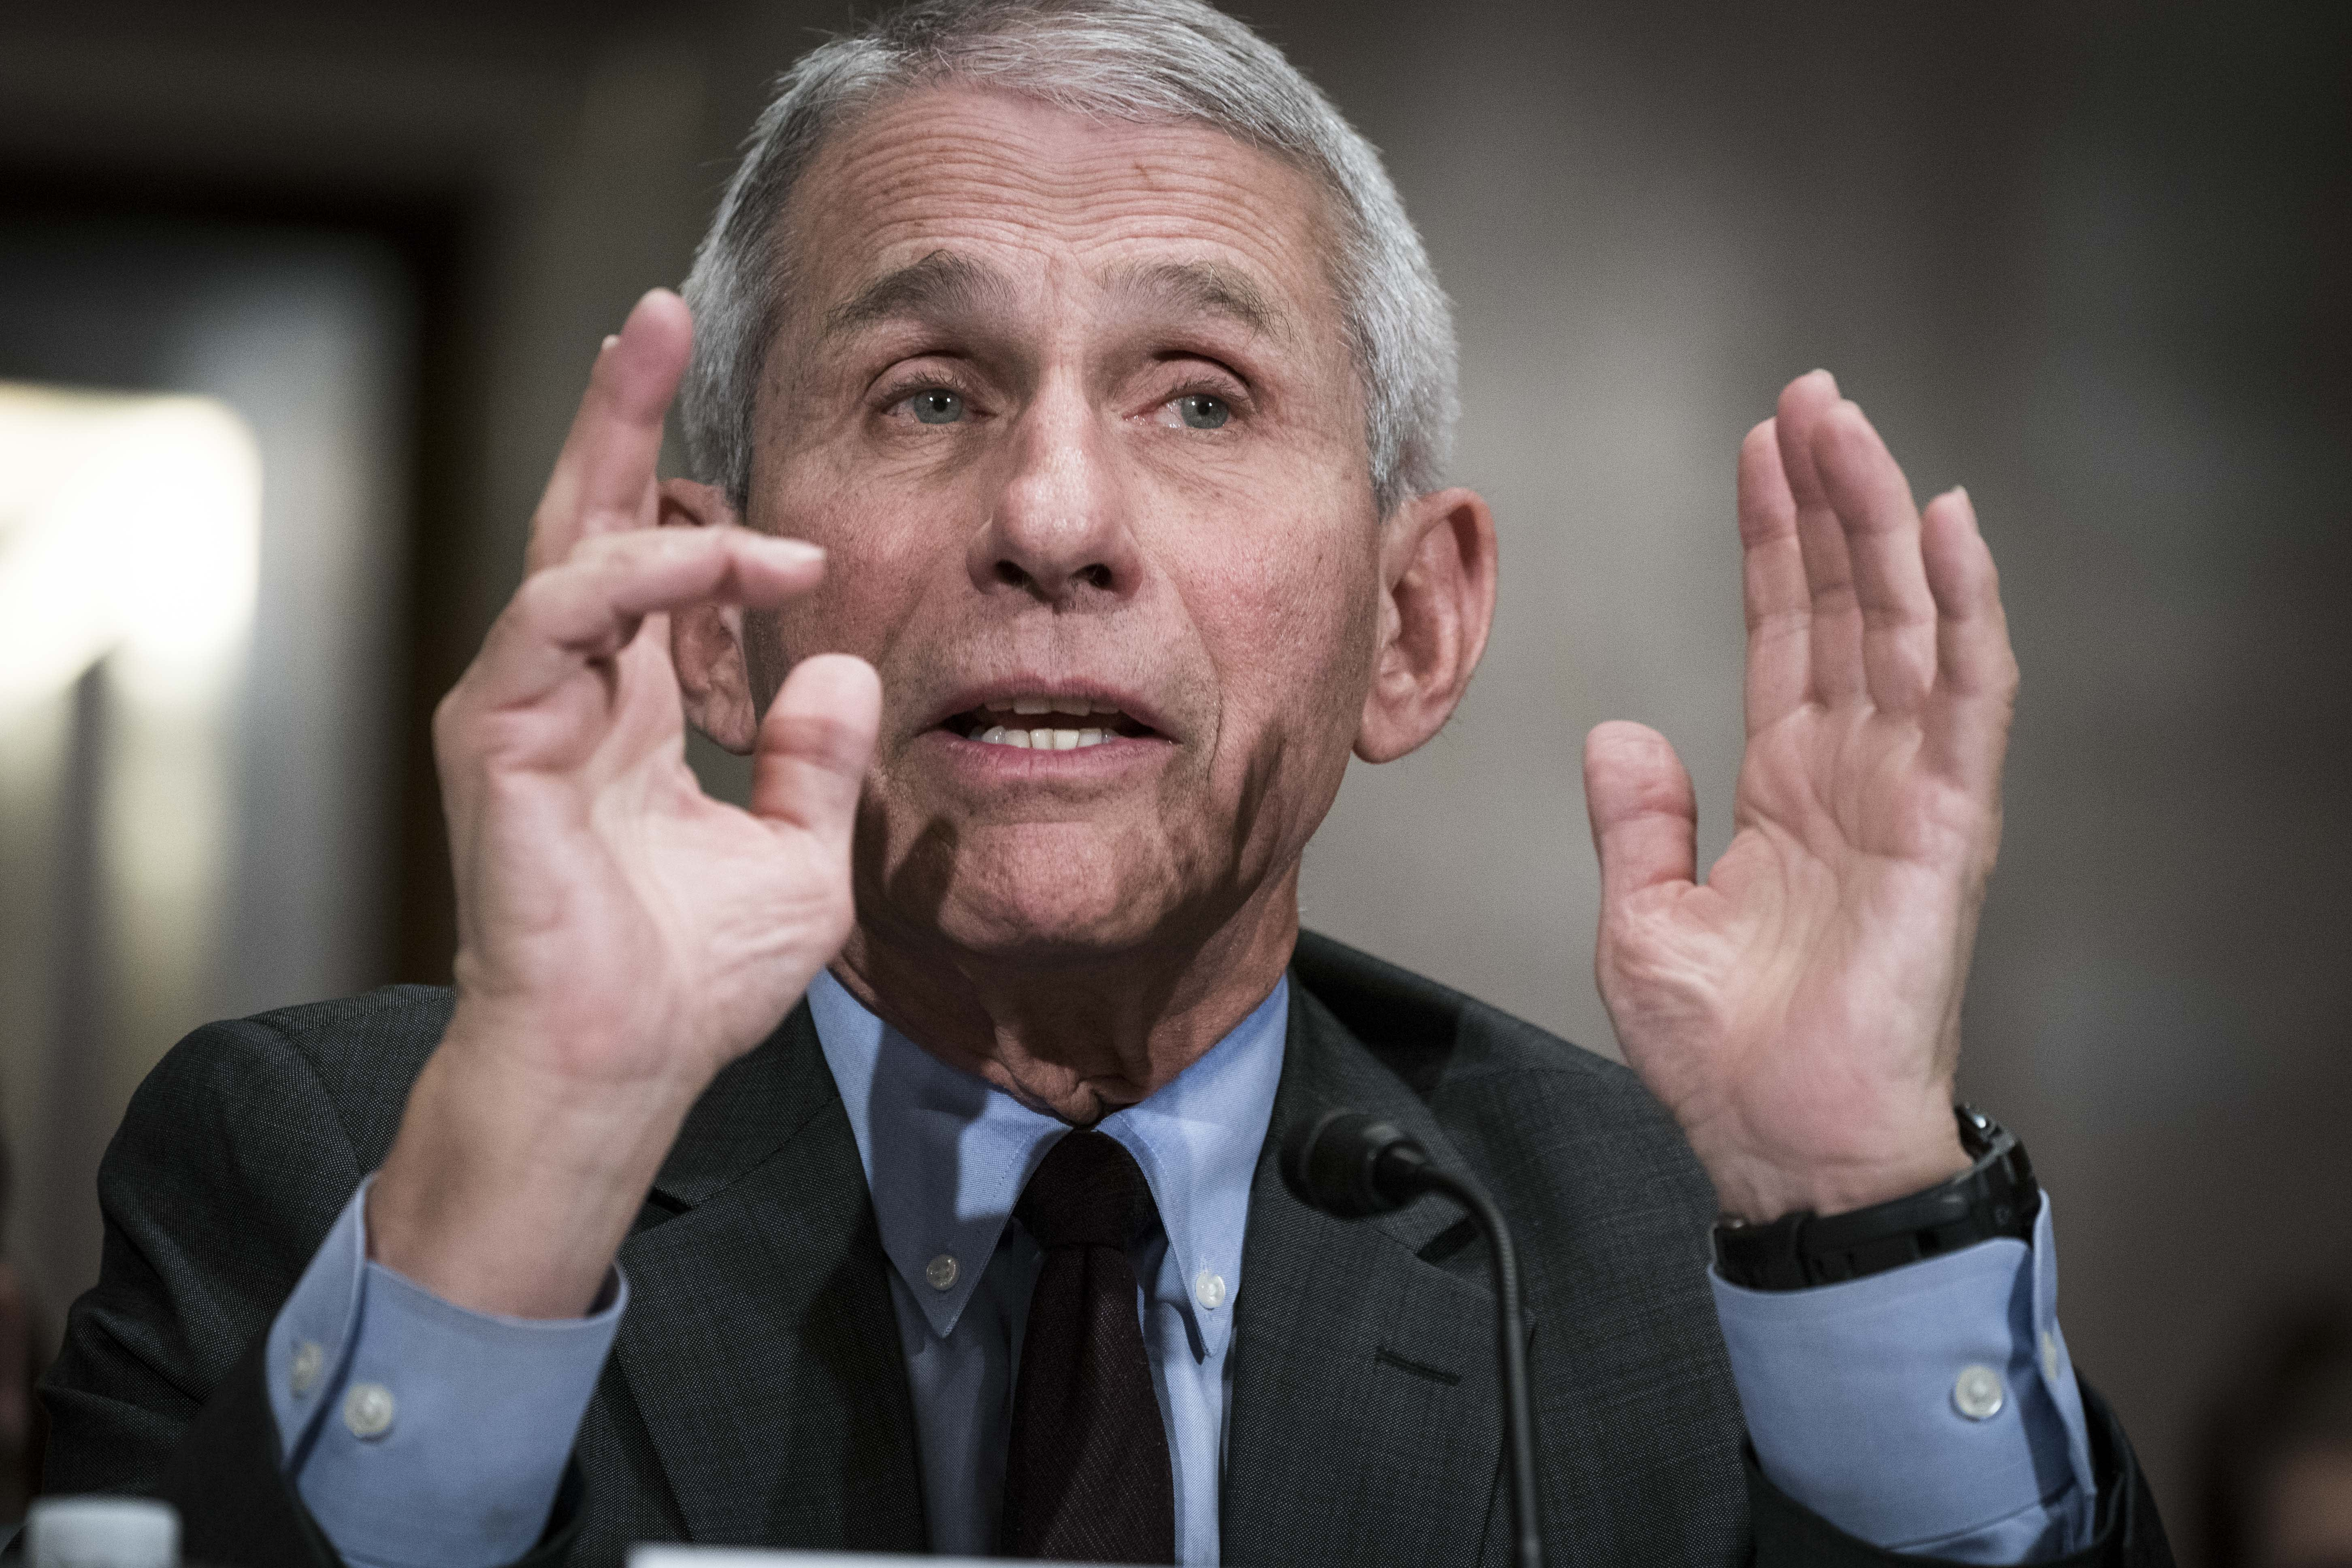 Dr. Anthony Fauci warns senators of 'suffering and death' if states reopen too early